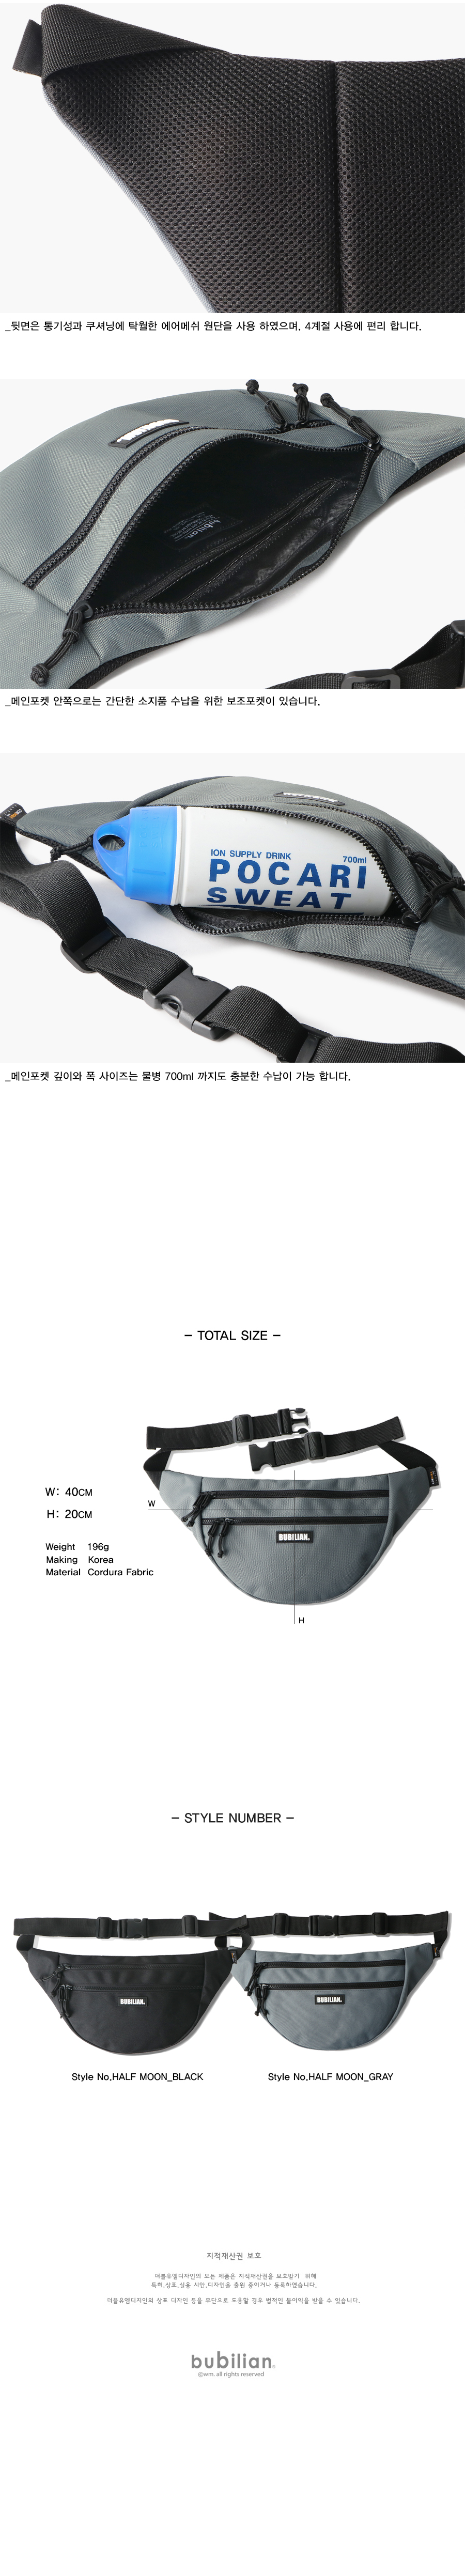 Bubilian Half Moon Waist Bag _ [GRAY]